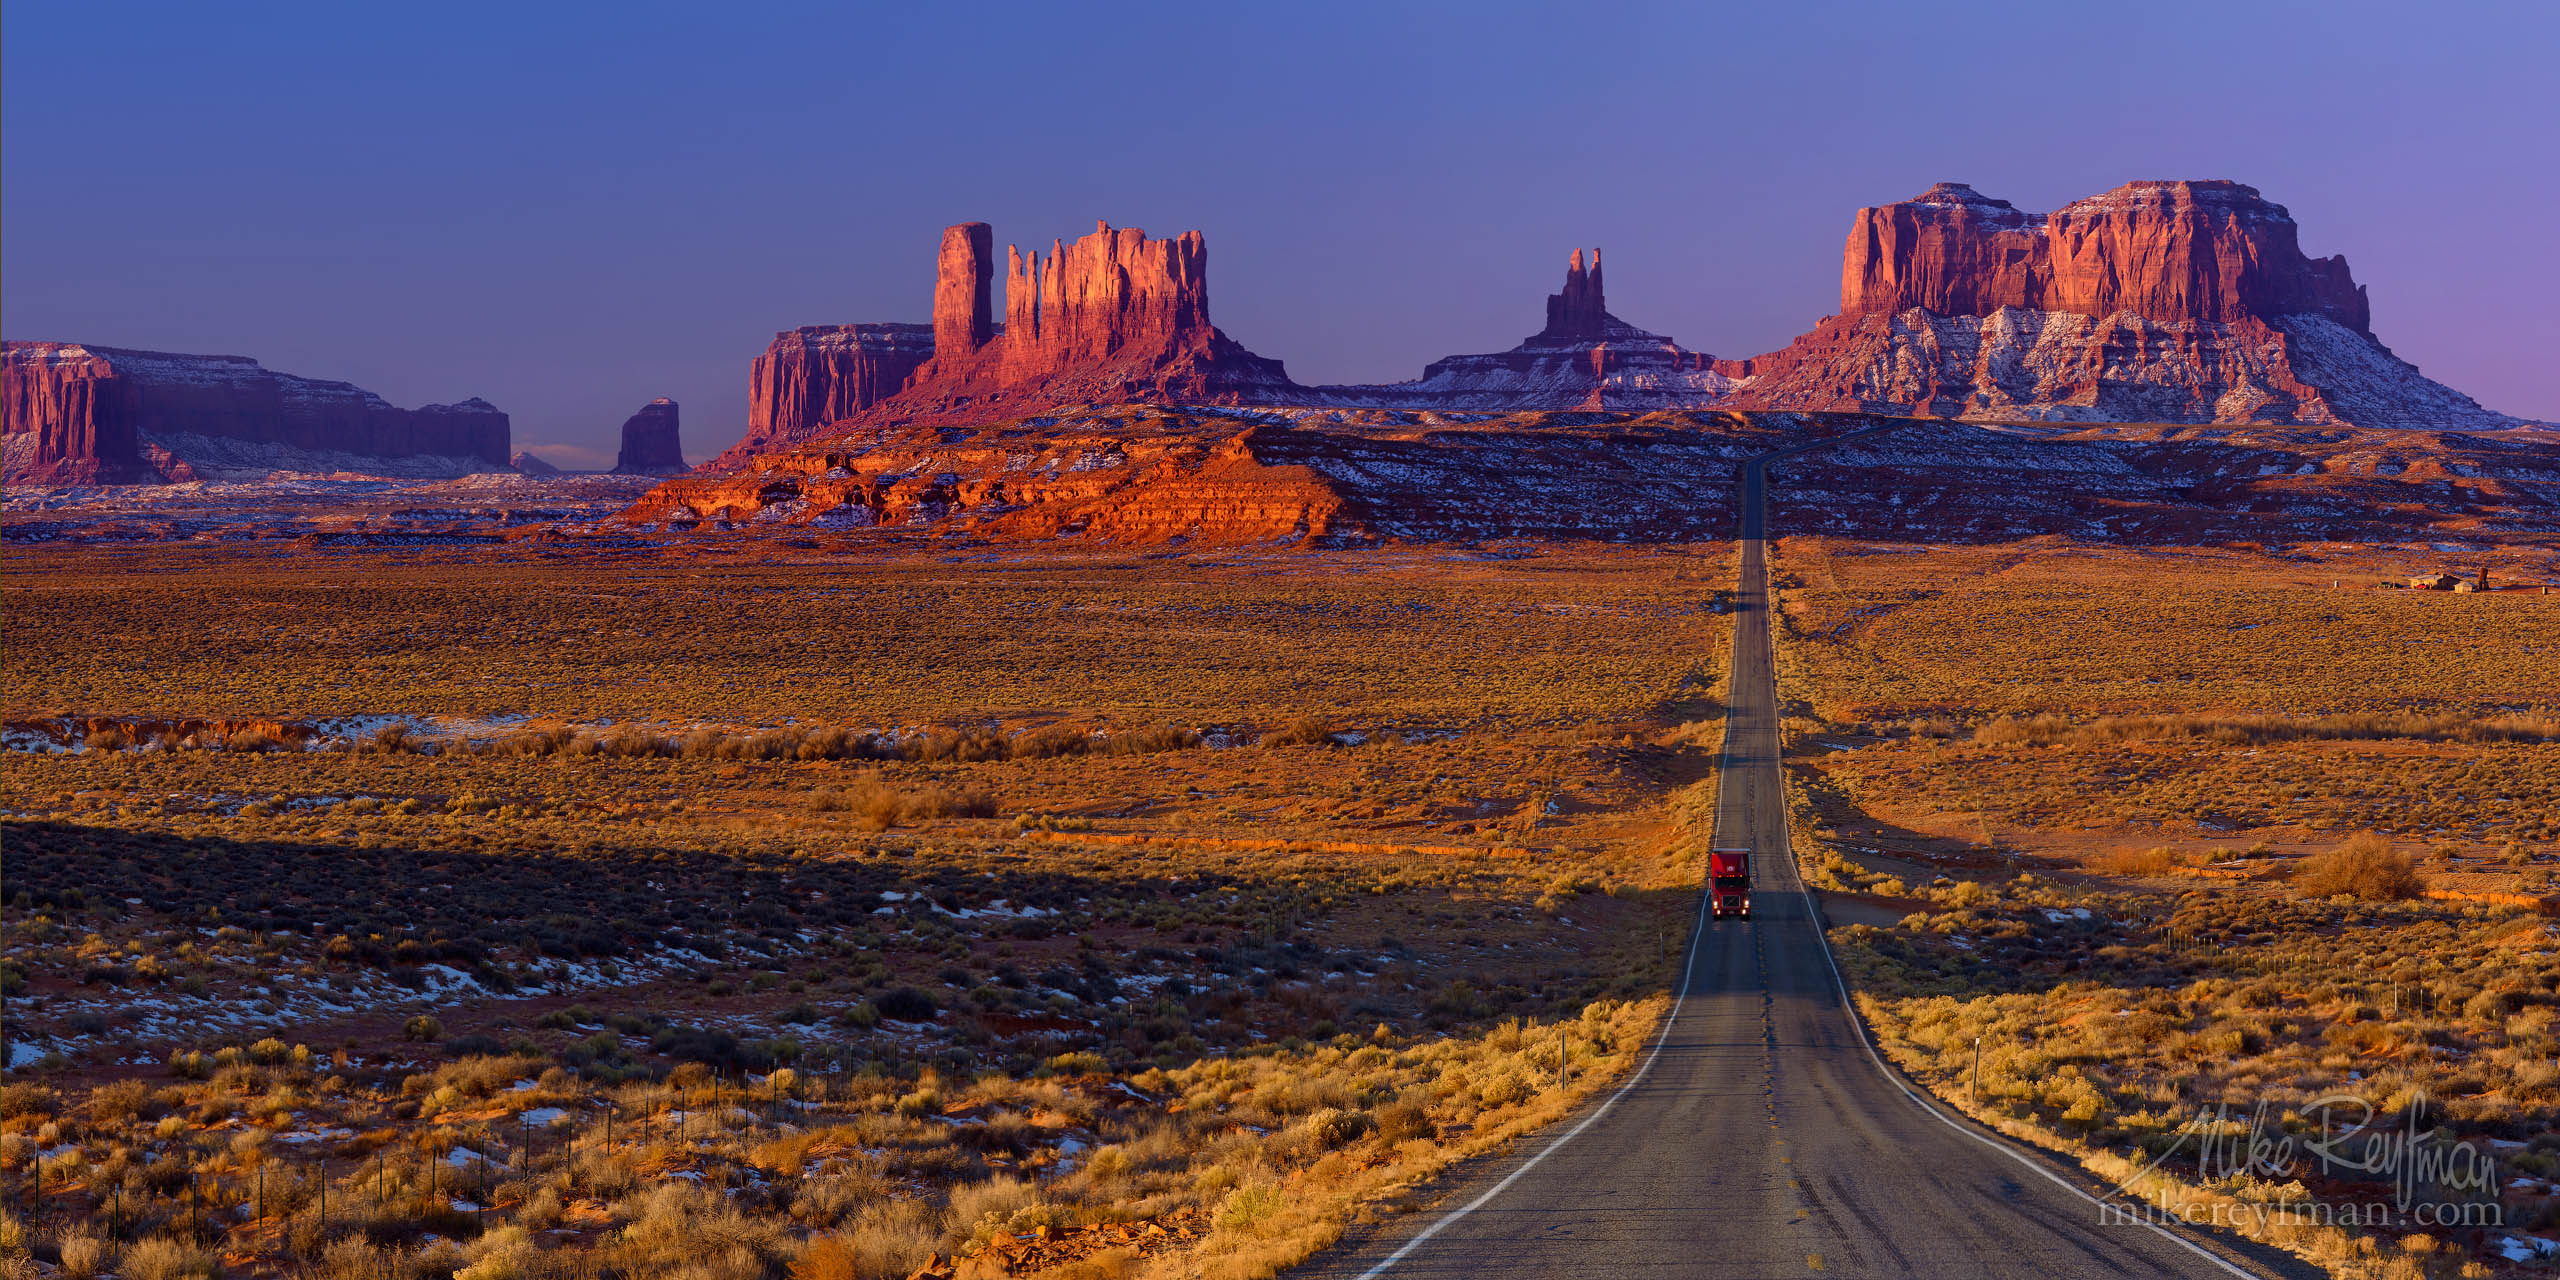 The classic road picture from US 163 approaching Monument Valley Pass from the north. Utah/Arizona border, USA P12-MRD8A6960-69-Pano - Selected panoramic images with 2:1 aspect ratio - Mike Reyfman Photography